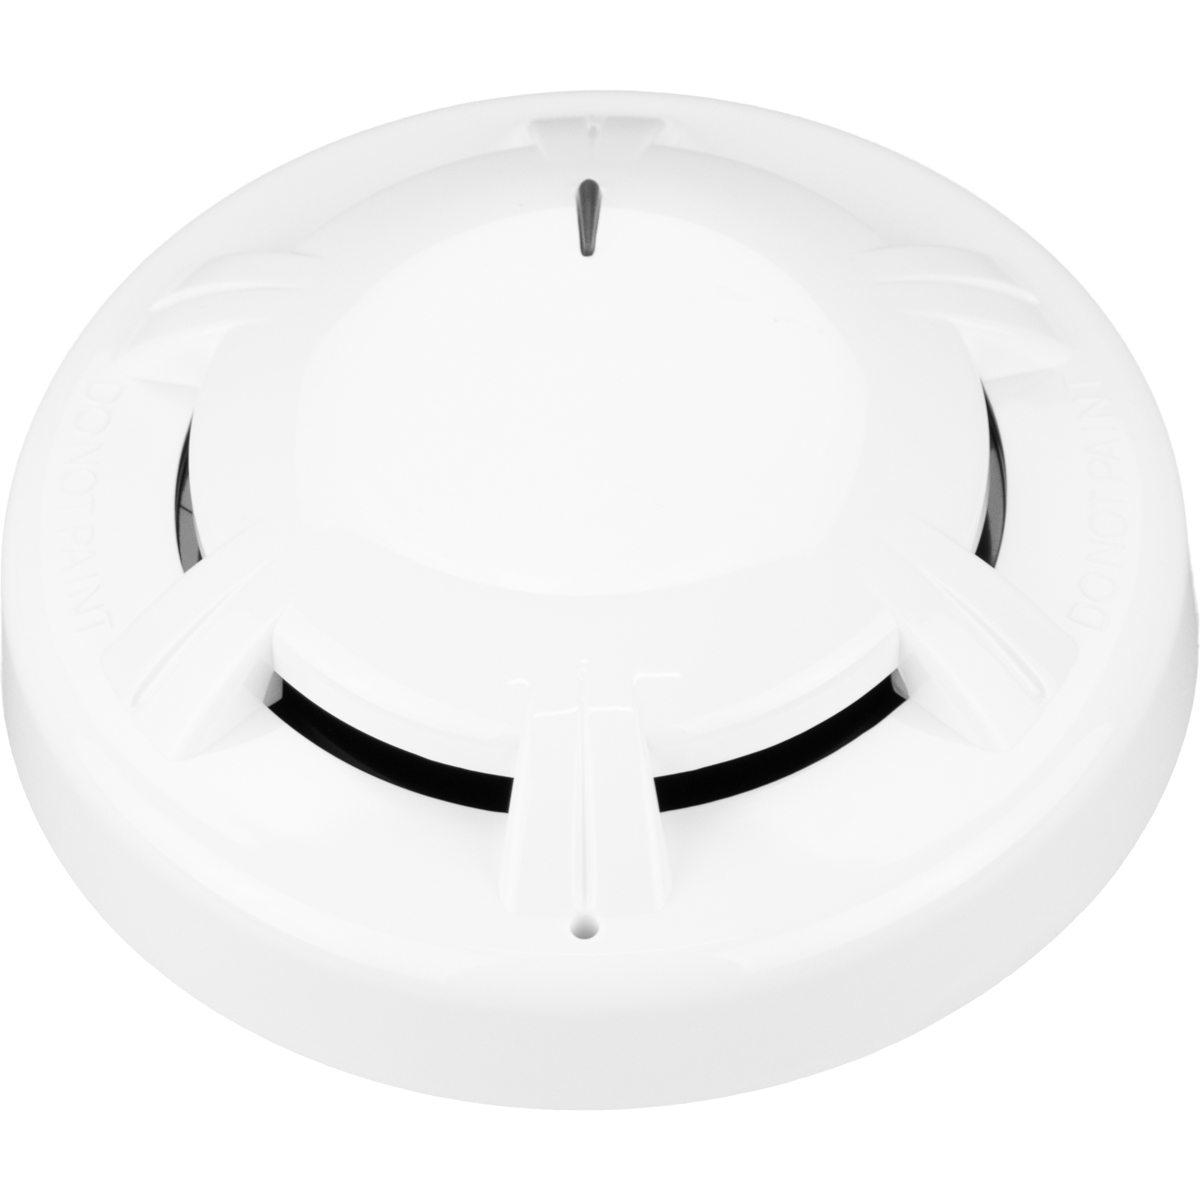 APOLLO ORBIS conventional fire alarm detectors